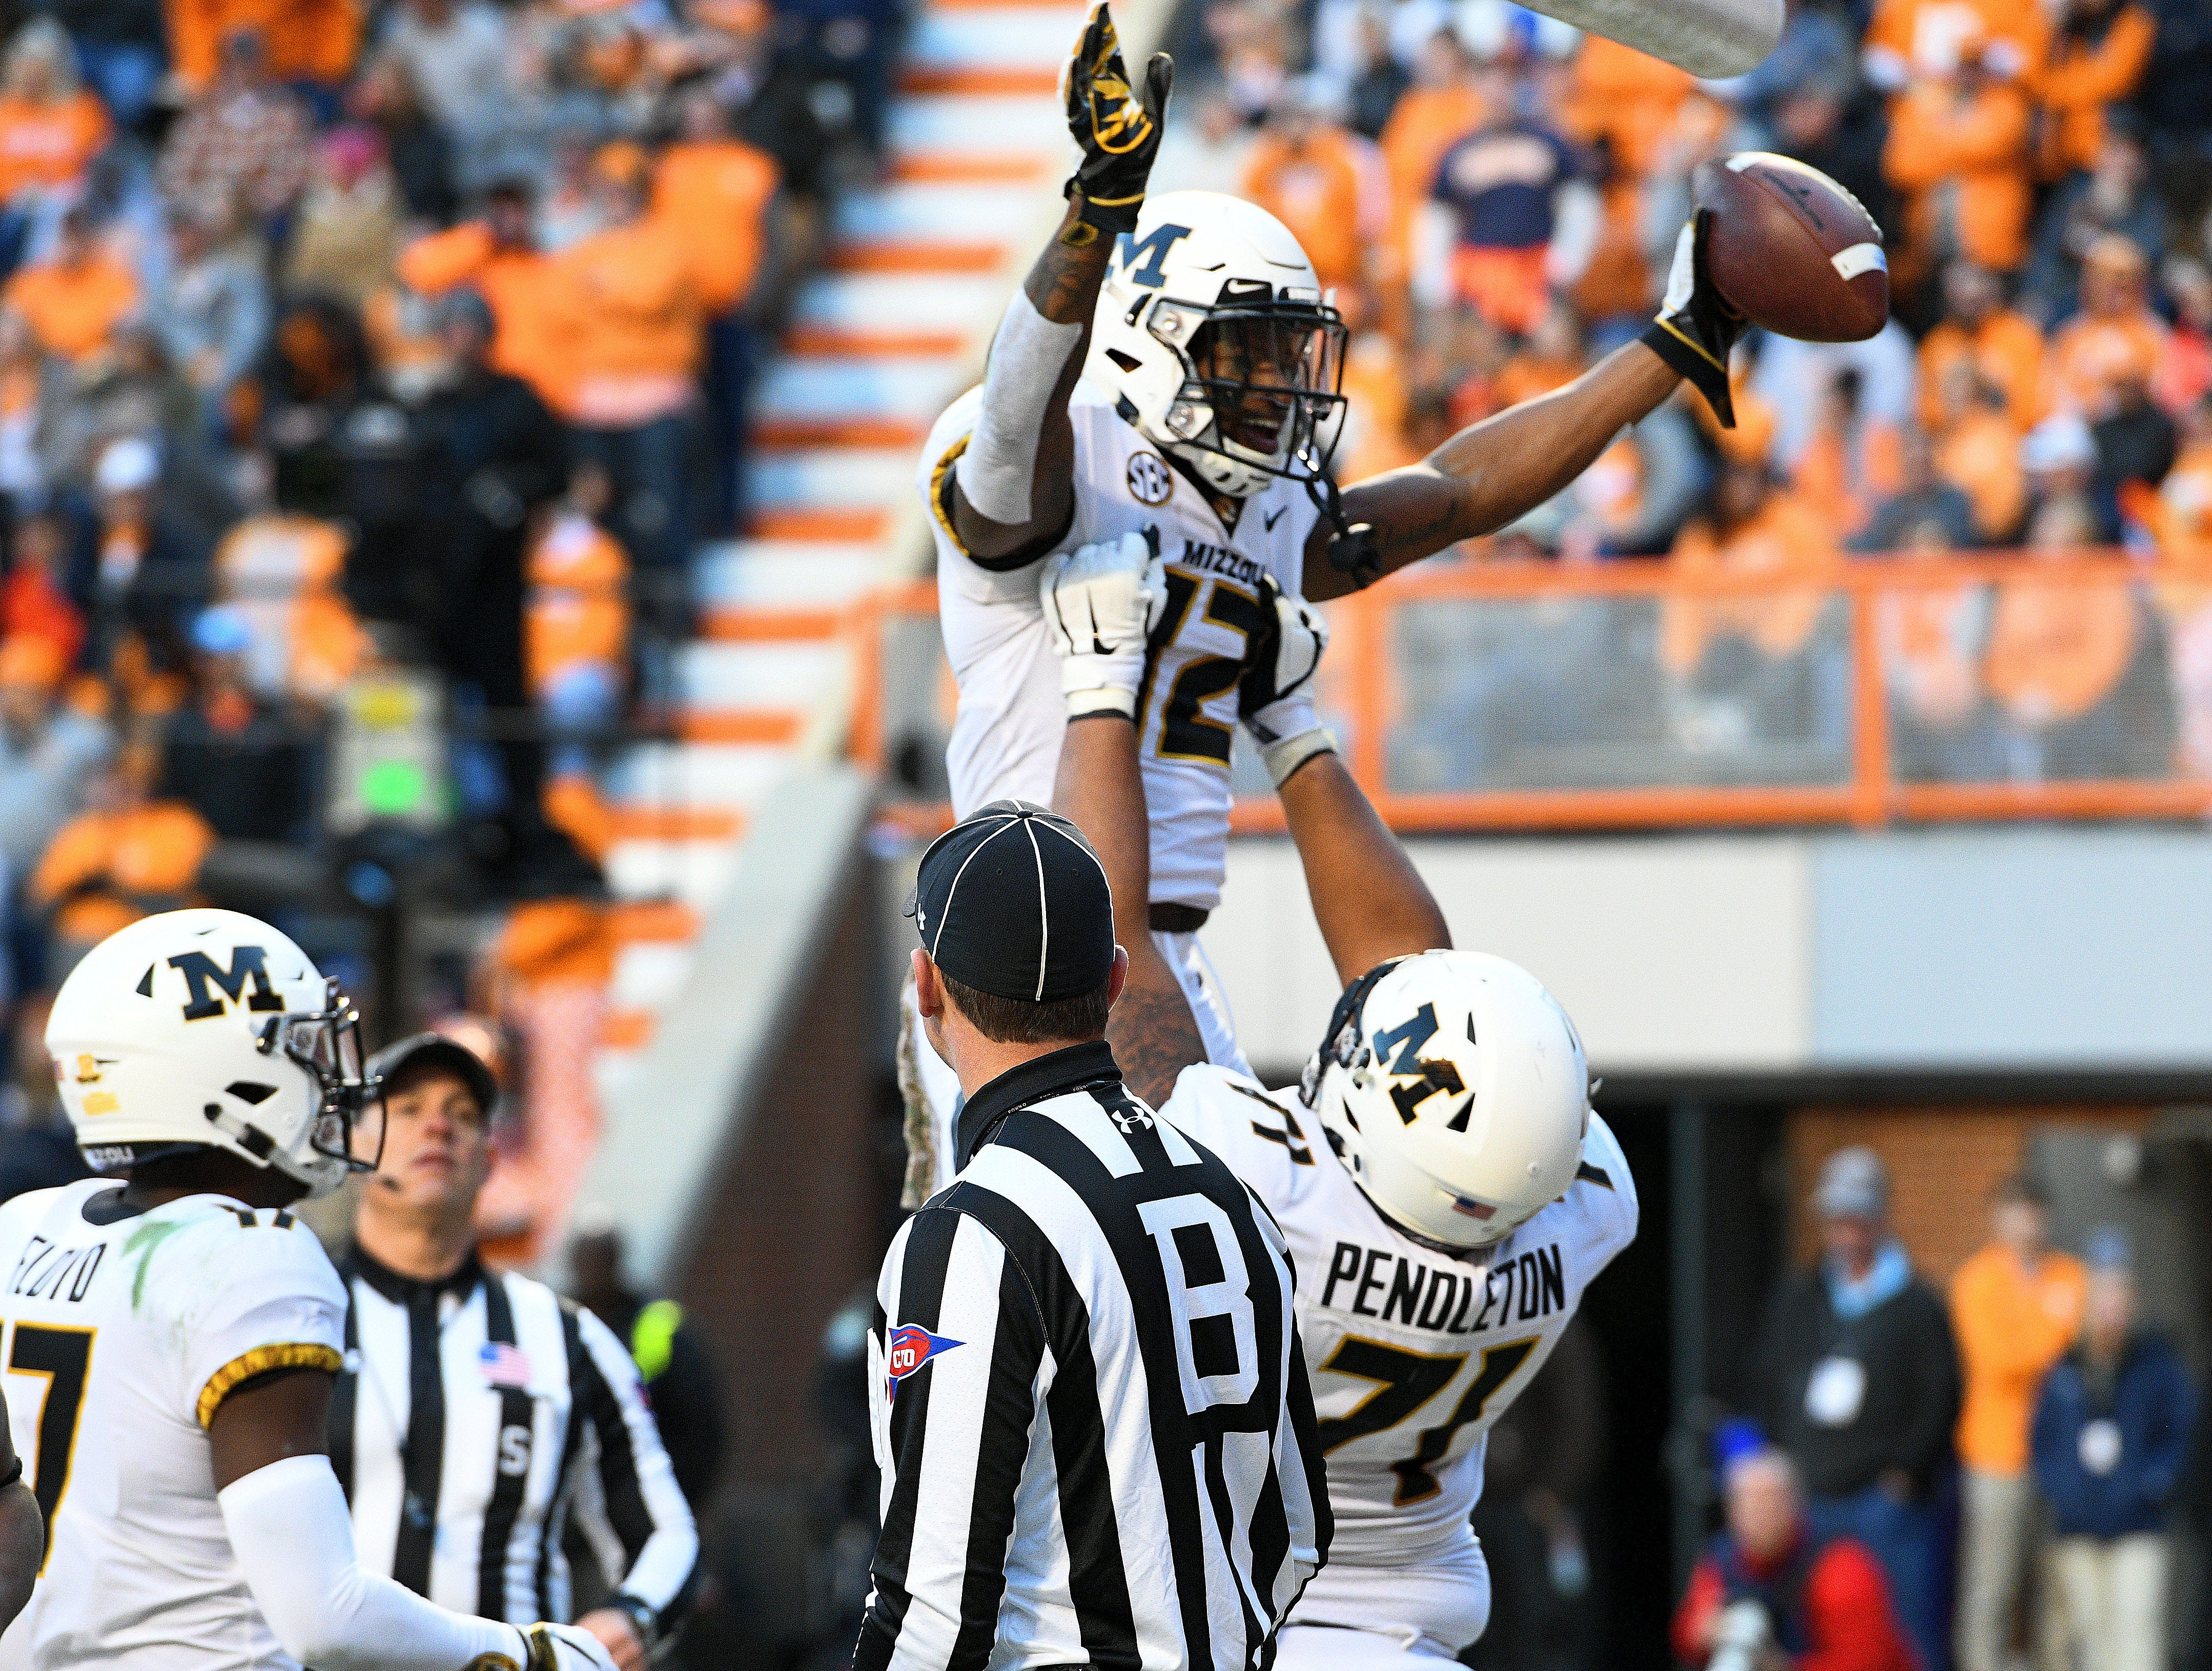 Missouri wide receiver Johnathon Johnson (12) celebrates a touchdown during first half action against Tennessee  Saturday, Nov. 17, 2018 at Neyland Stadium in Knoxville, Tenn.